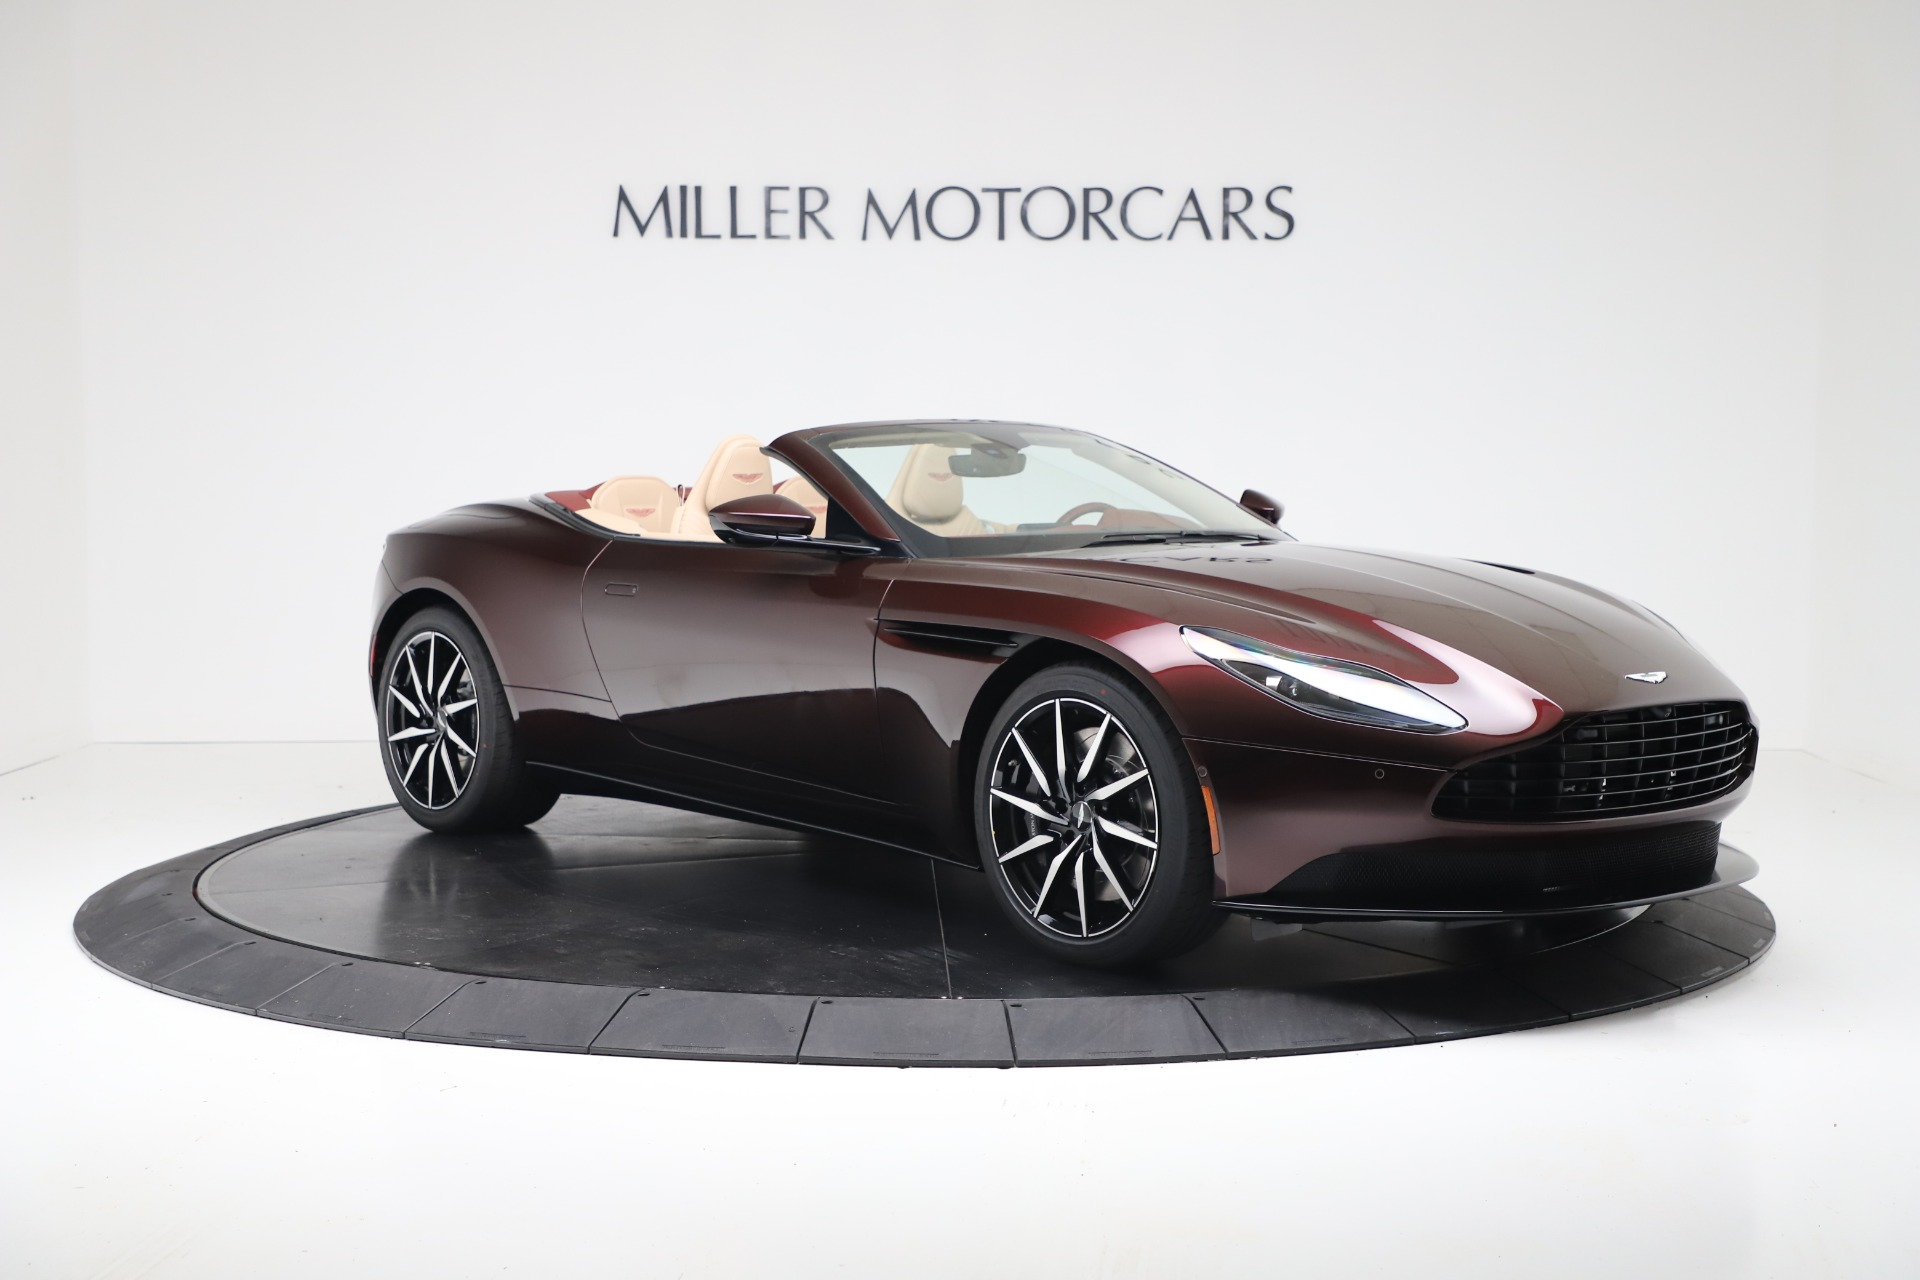 Pre Owned 2020 Aston Martin Db11 Volante For Sale Miller Motorcars Stock 7905